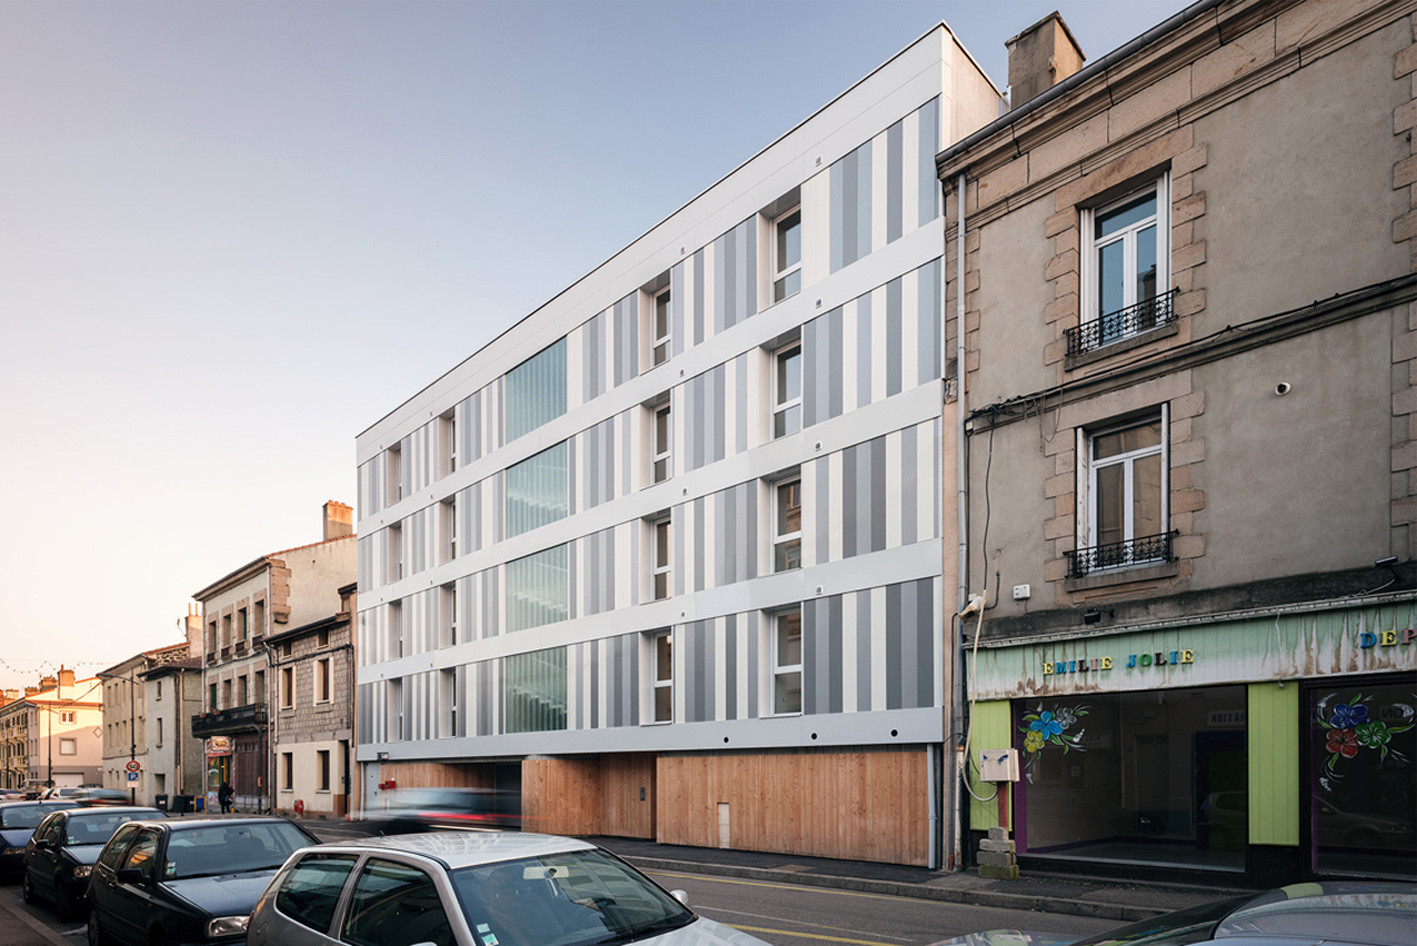 11 Social Housing Units / Zoomfactor Architectes, © Sa2t Grand-Angle-Photographie